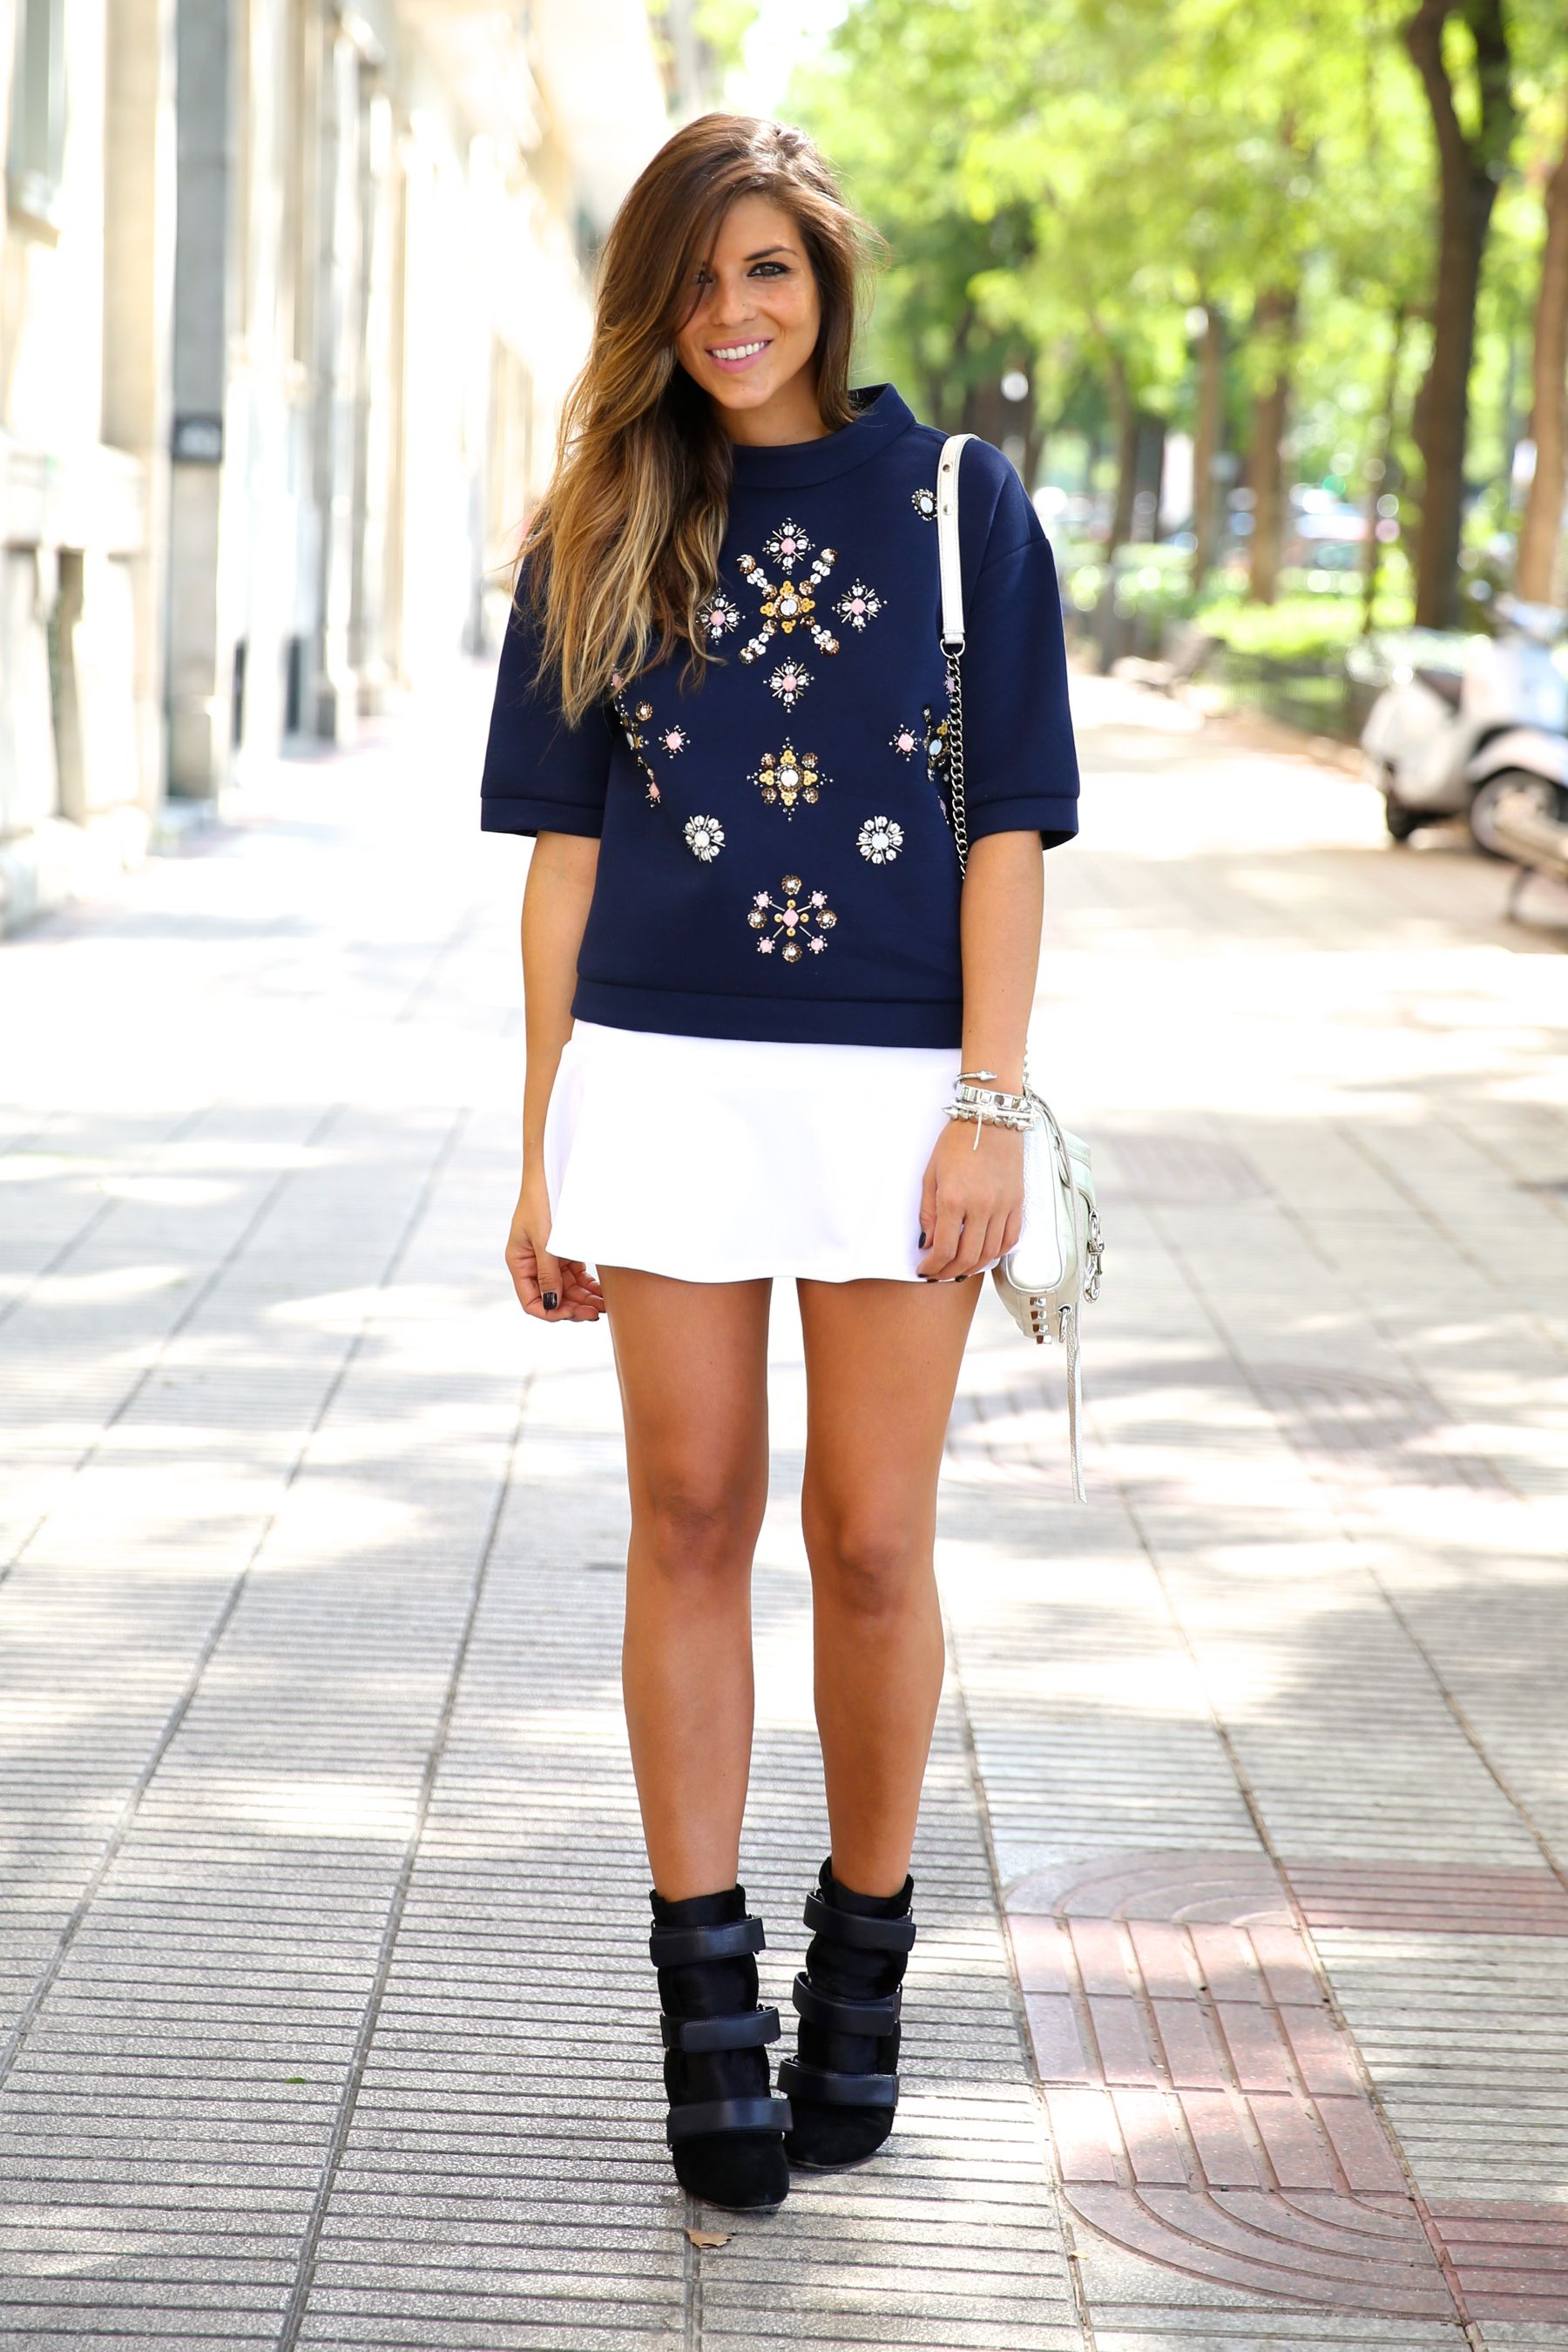 trendy_taste-look-outfit-street_style-ootd-blog-blogger-fashion_spain-moda_españa-sport_chic-isabel_marant-botines-booties-sudadera-pedrería-sweater-falda-skirt-blue-azul-trend-tendencia-bolso_plateado-silver-bag-10